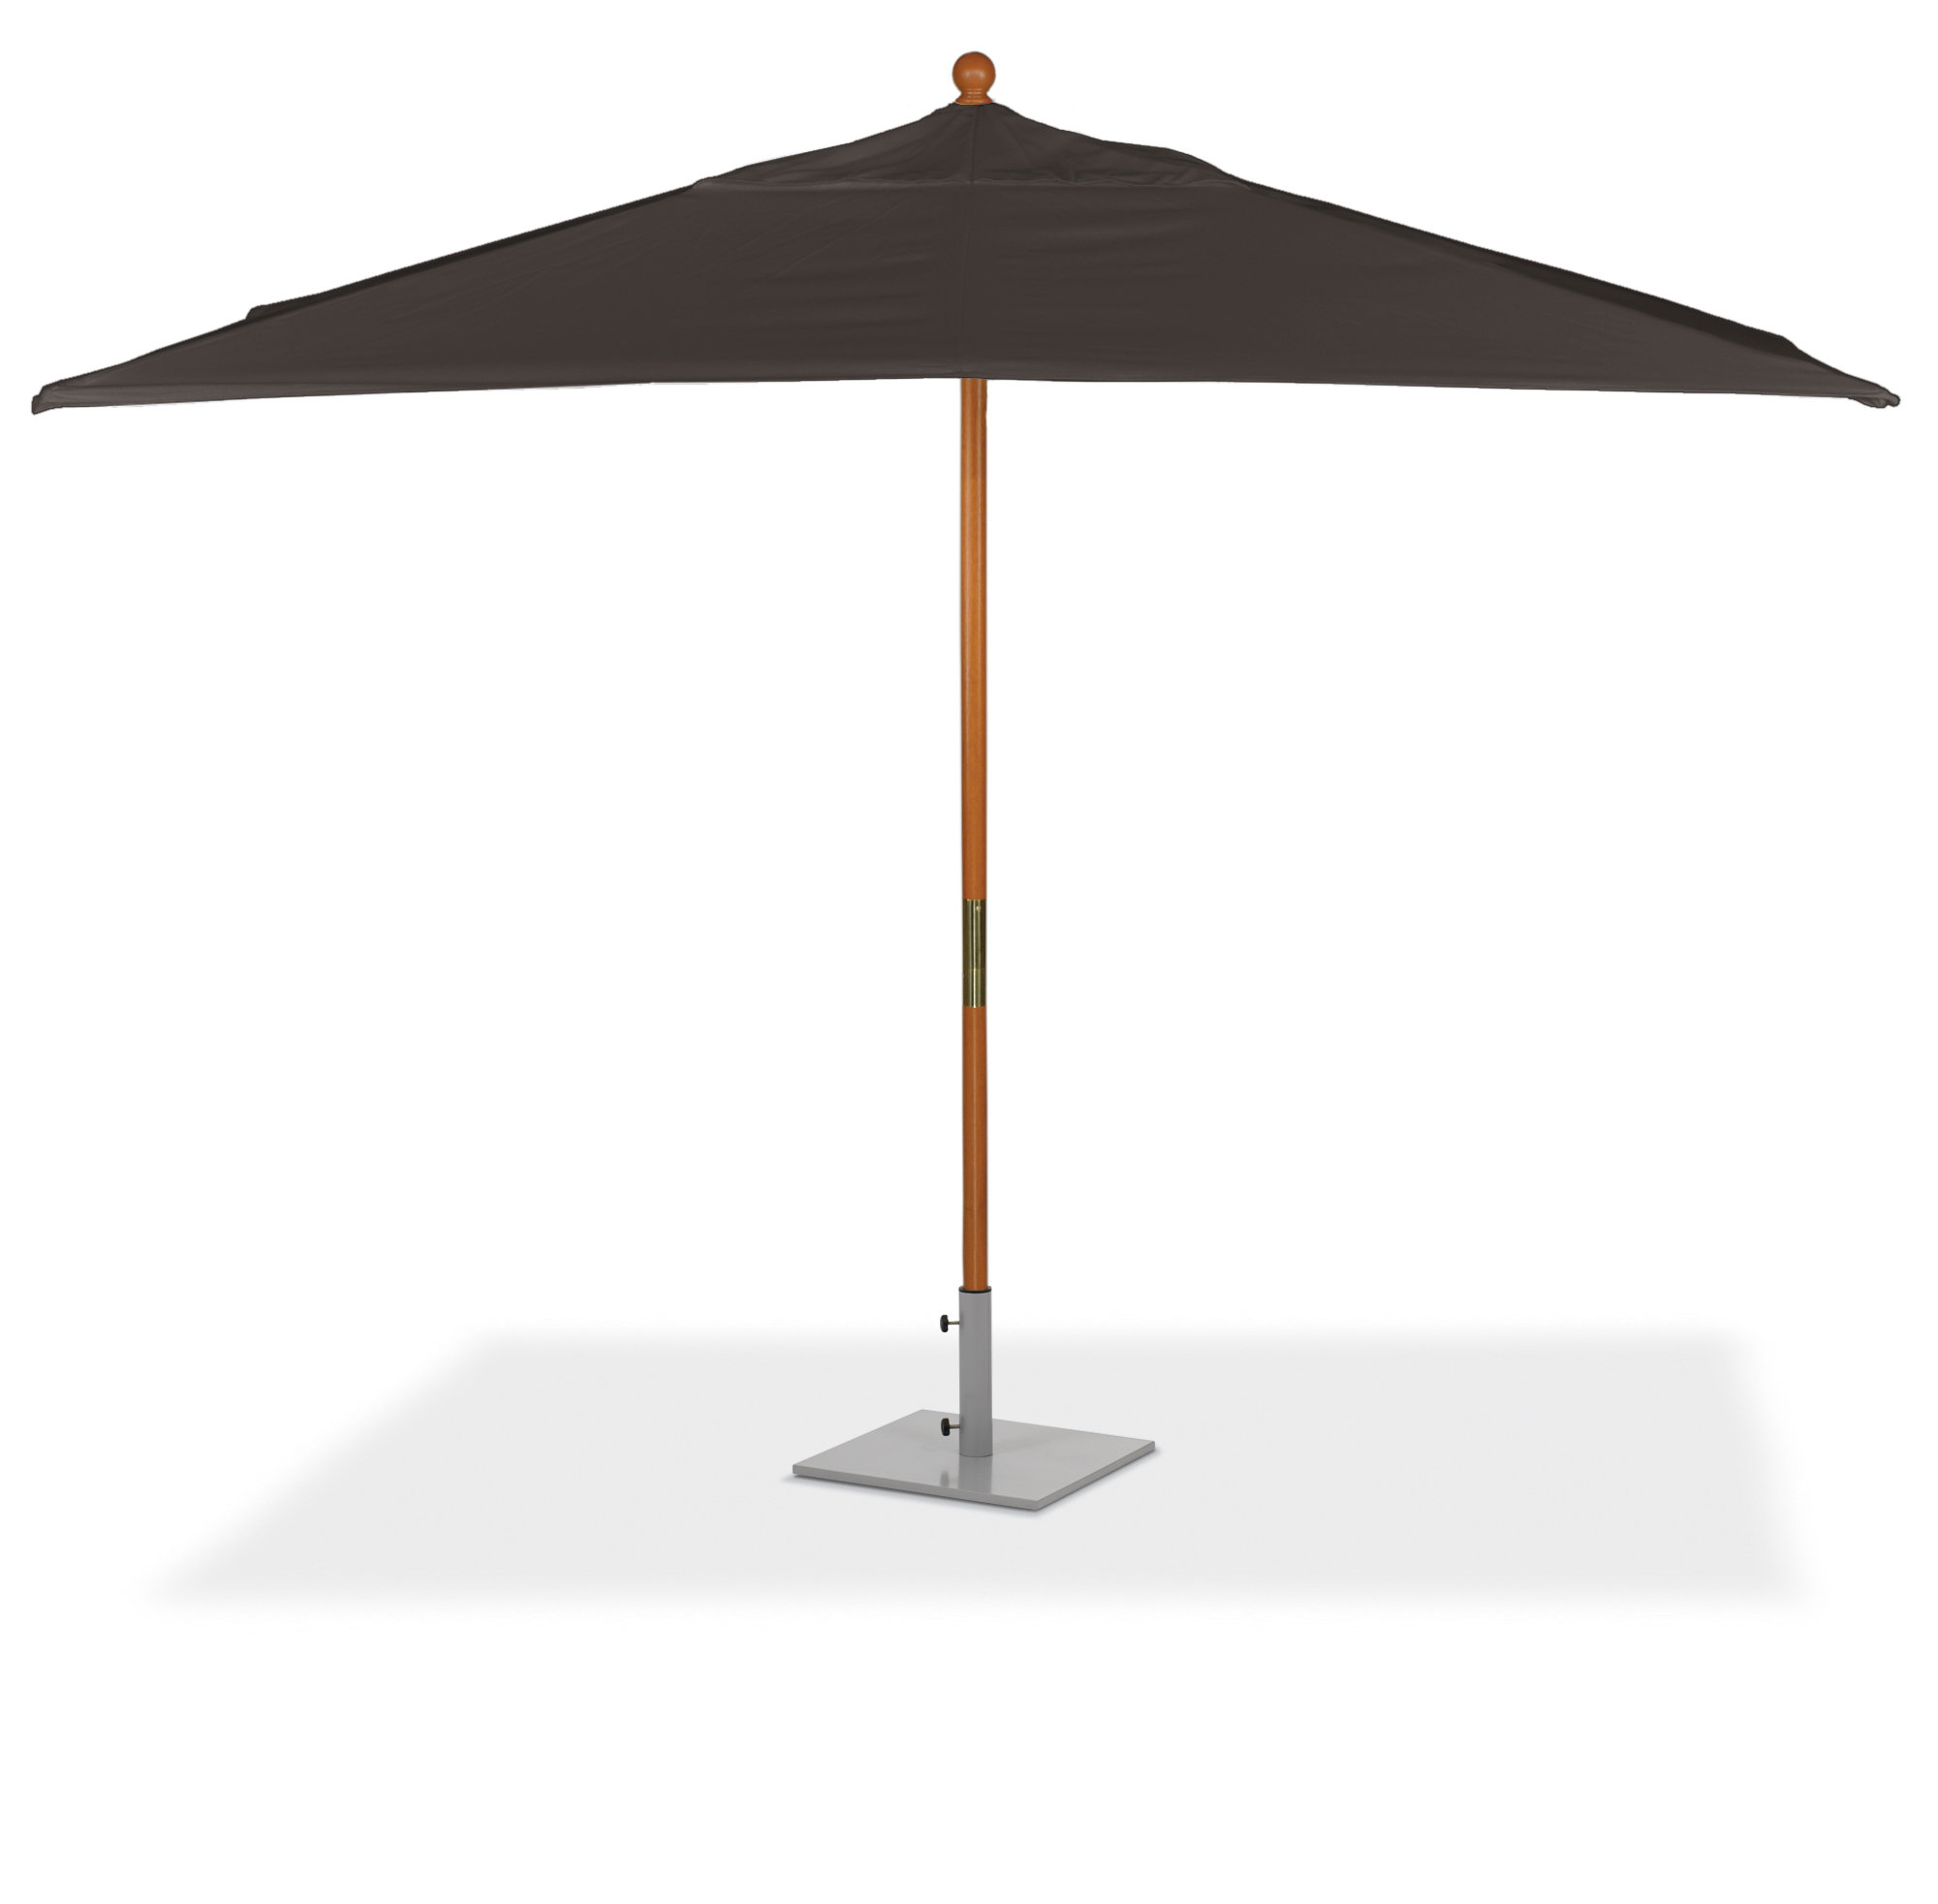 Widely Used Standwood 6' X 10' Rectangular Market Sunbrella Umbrella In Launceston Rectangular Market Umbrellas (View 20 of 20)